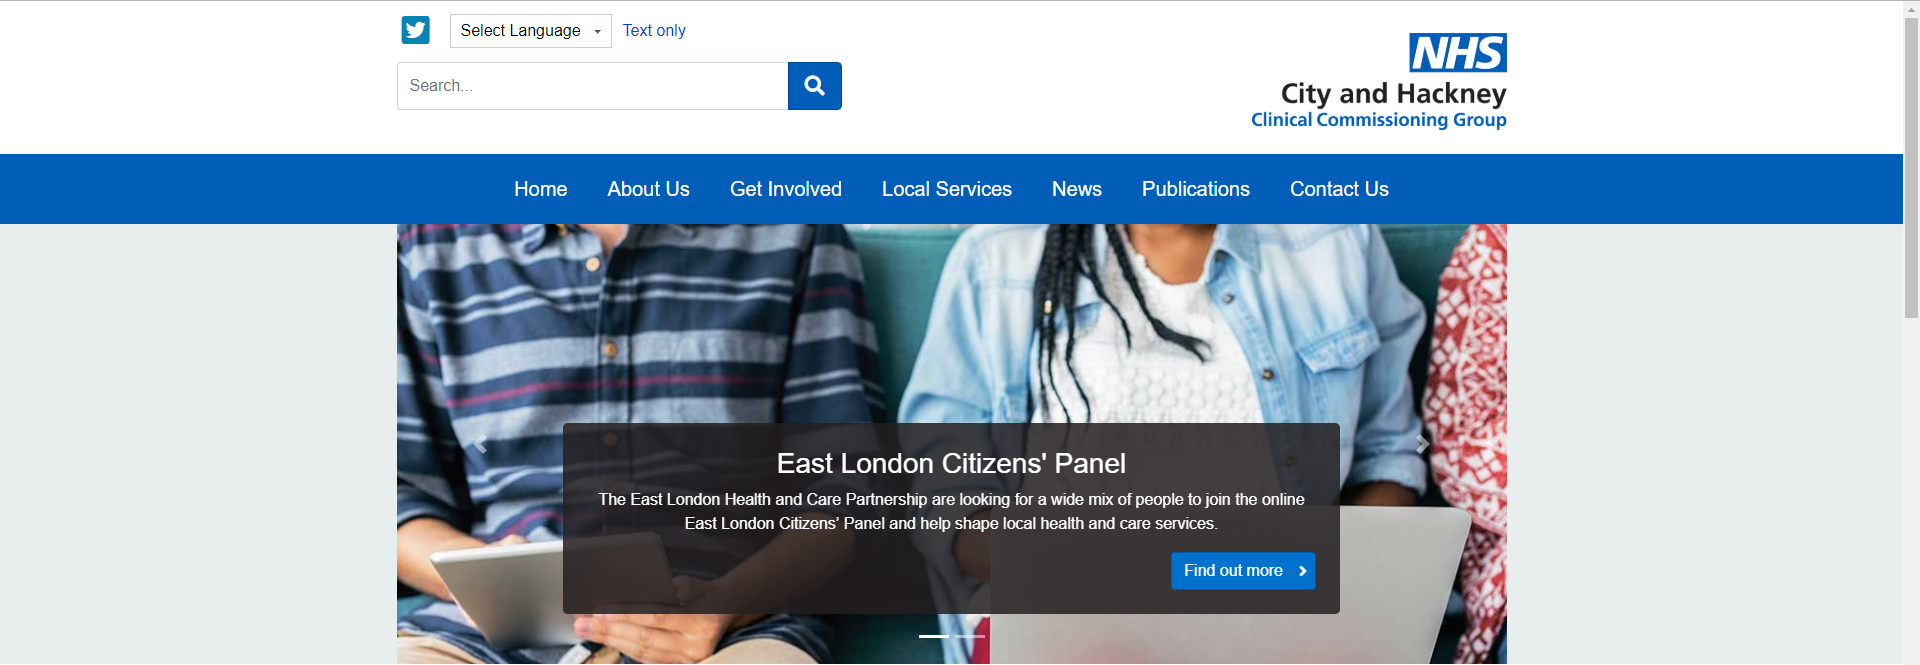 City & Hackney Clinical Commissioning Group.